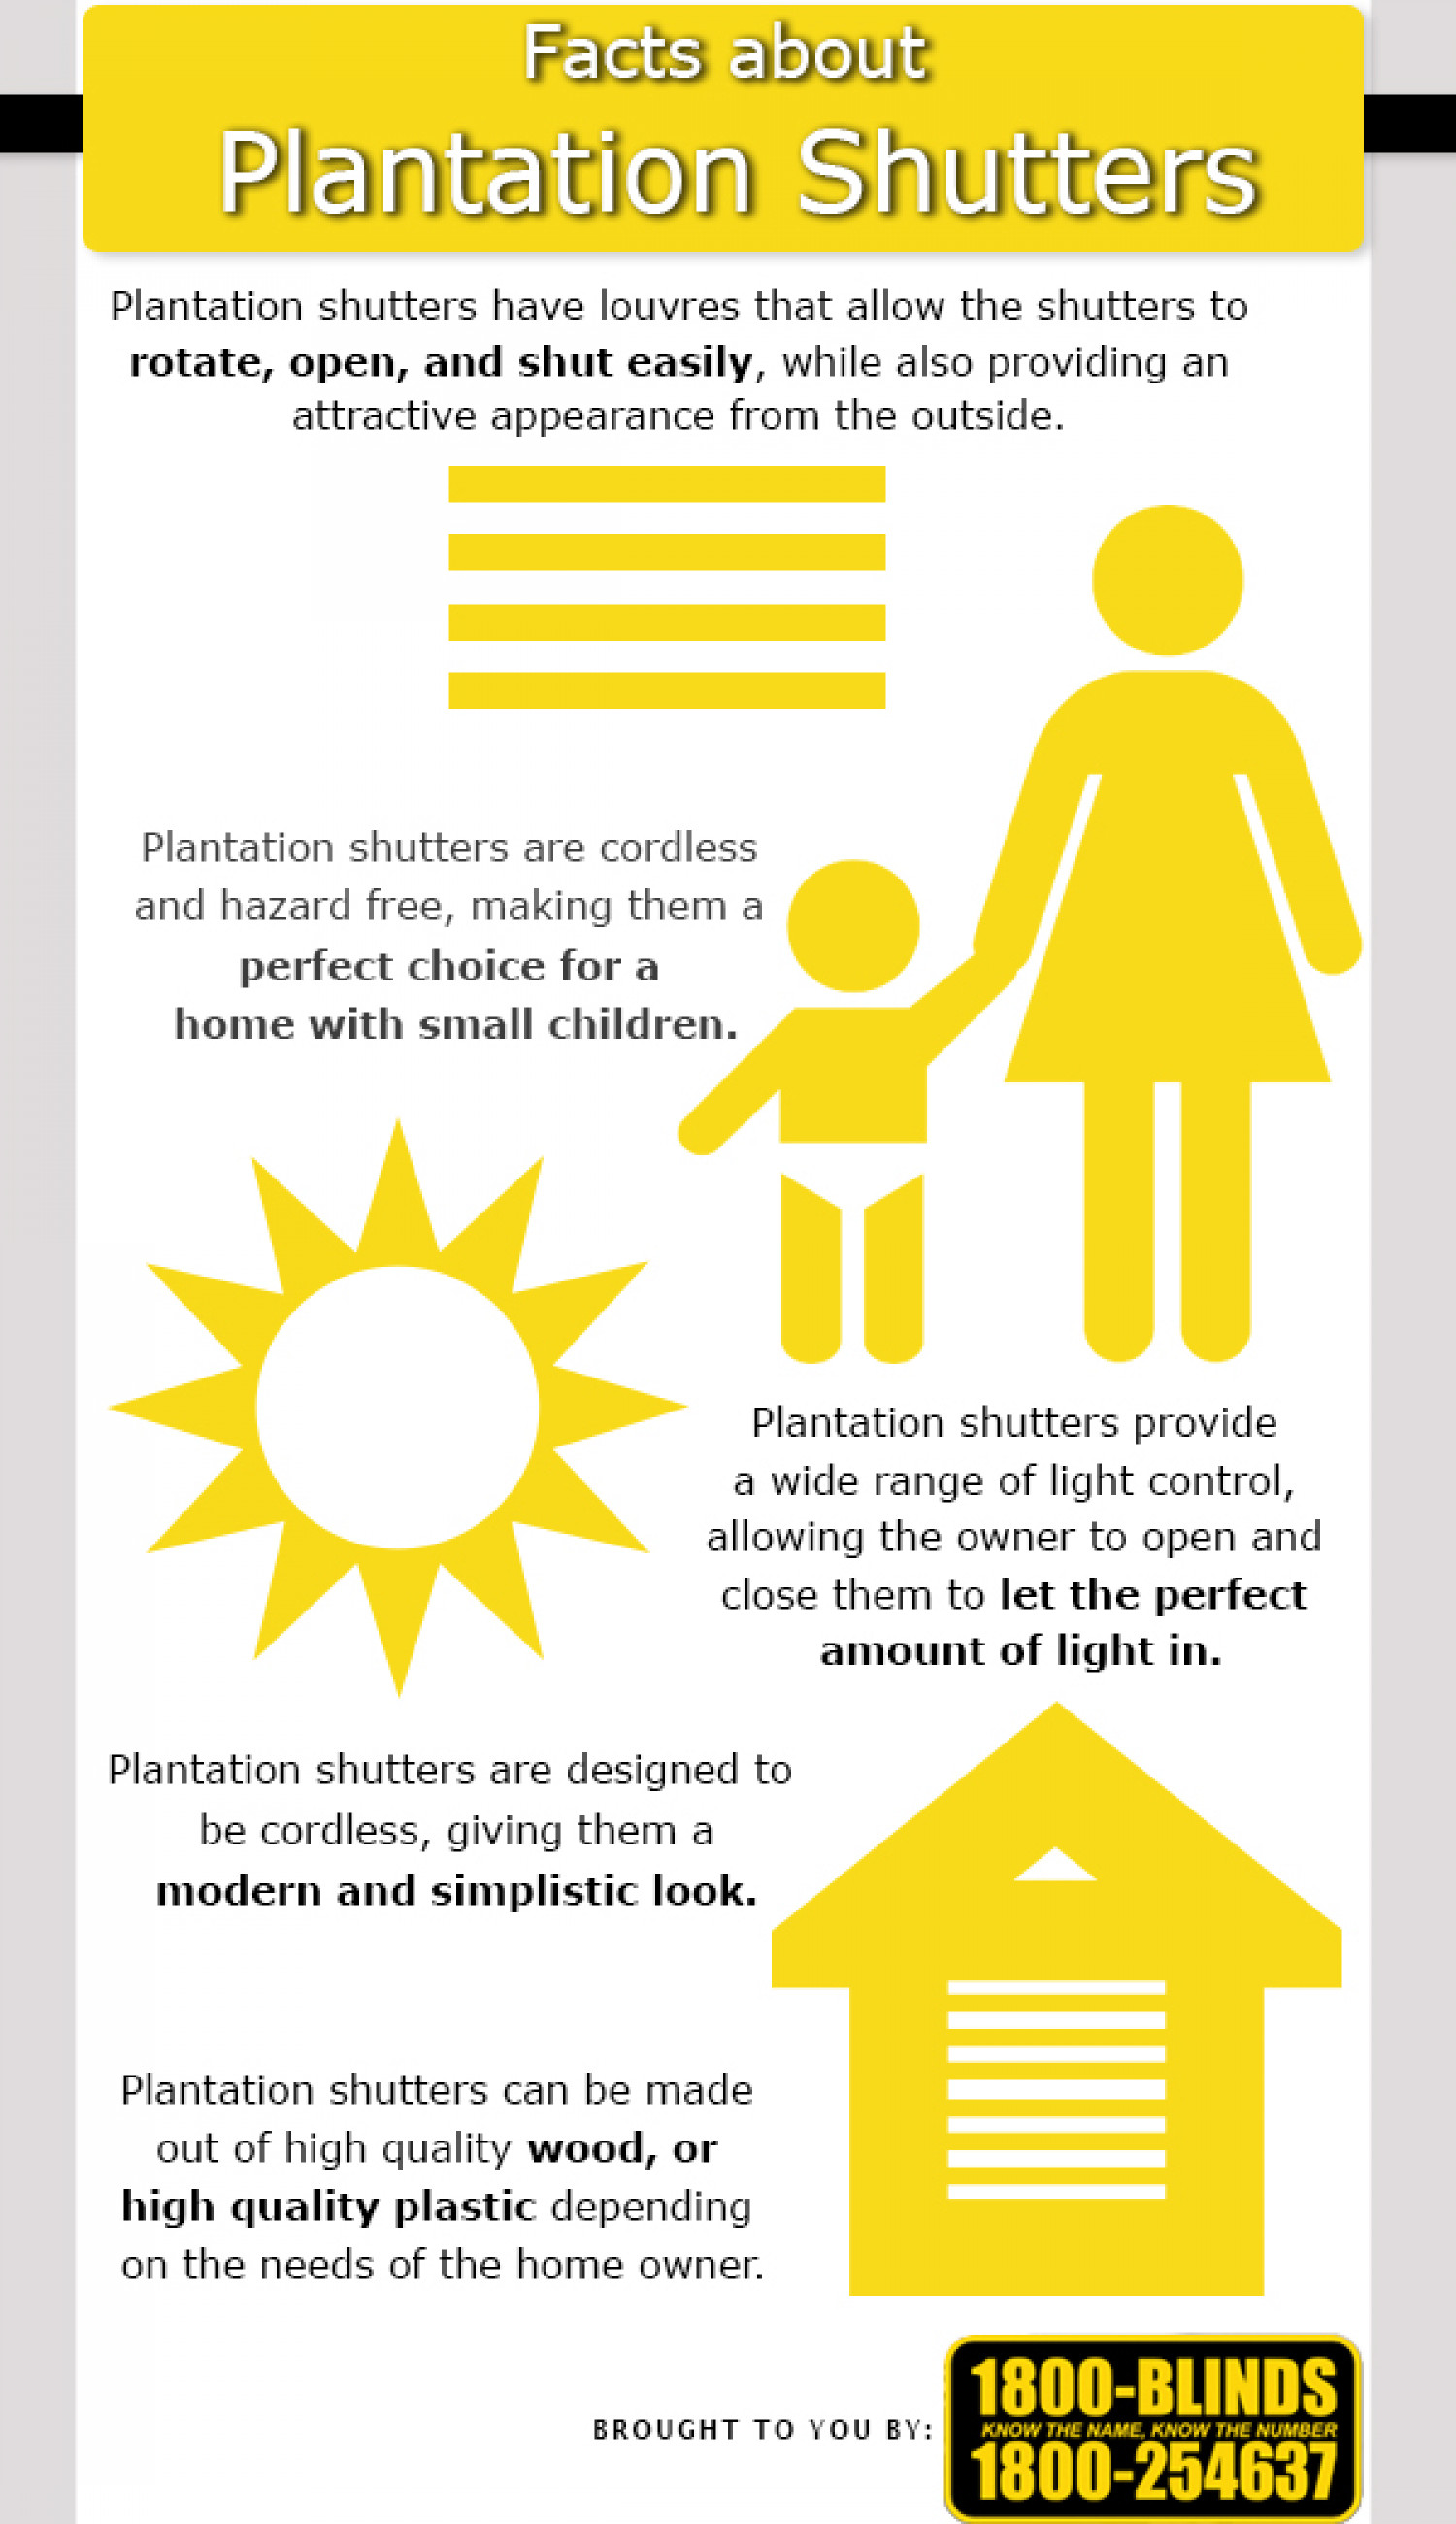 Facts About Plantation Shutters Infographic